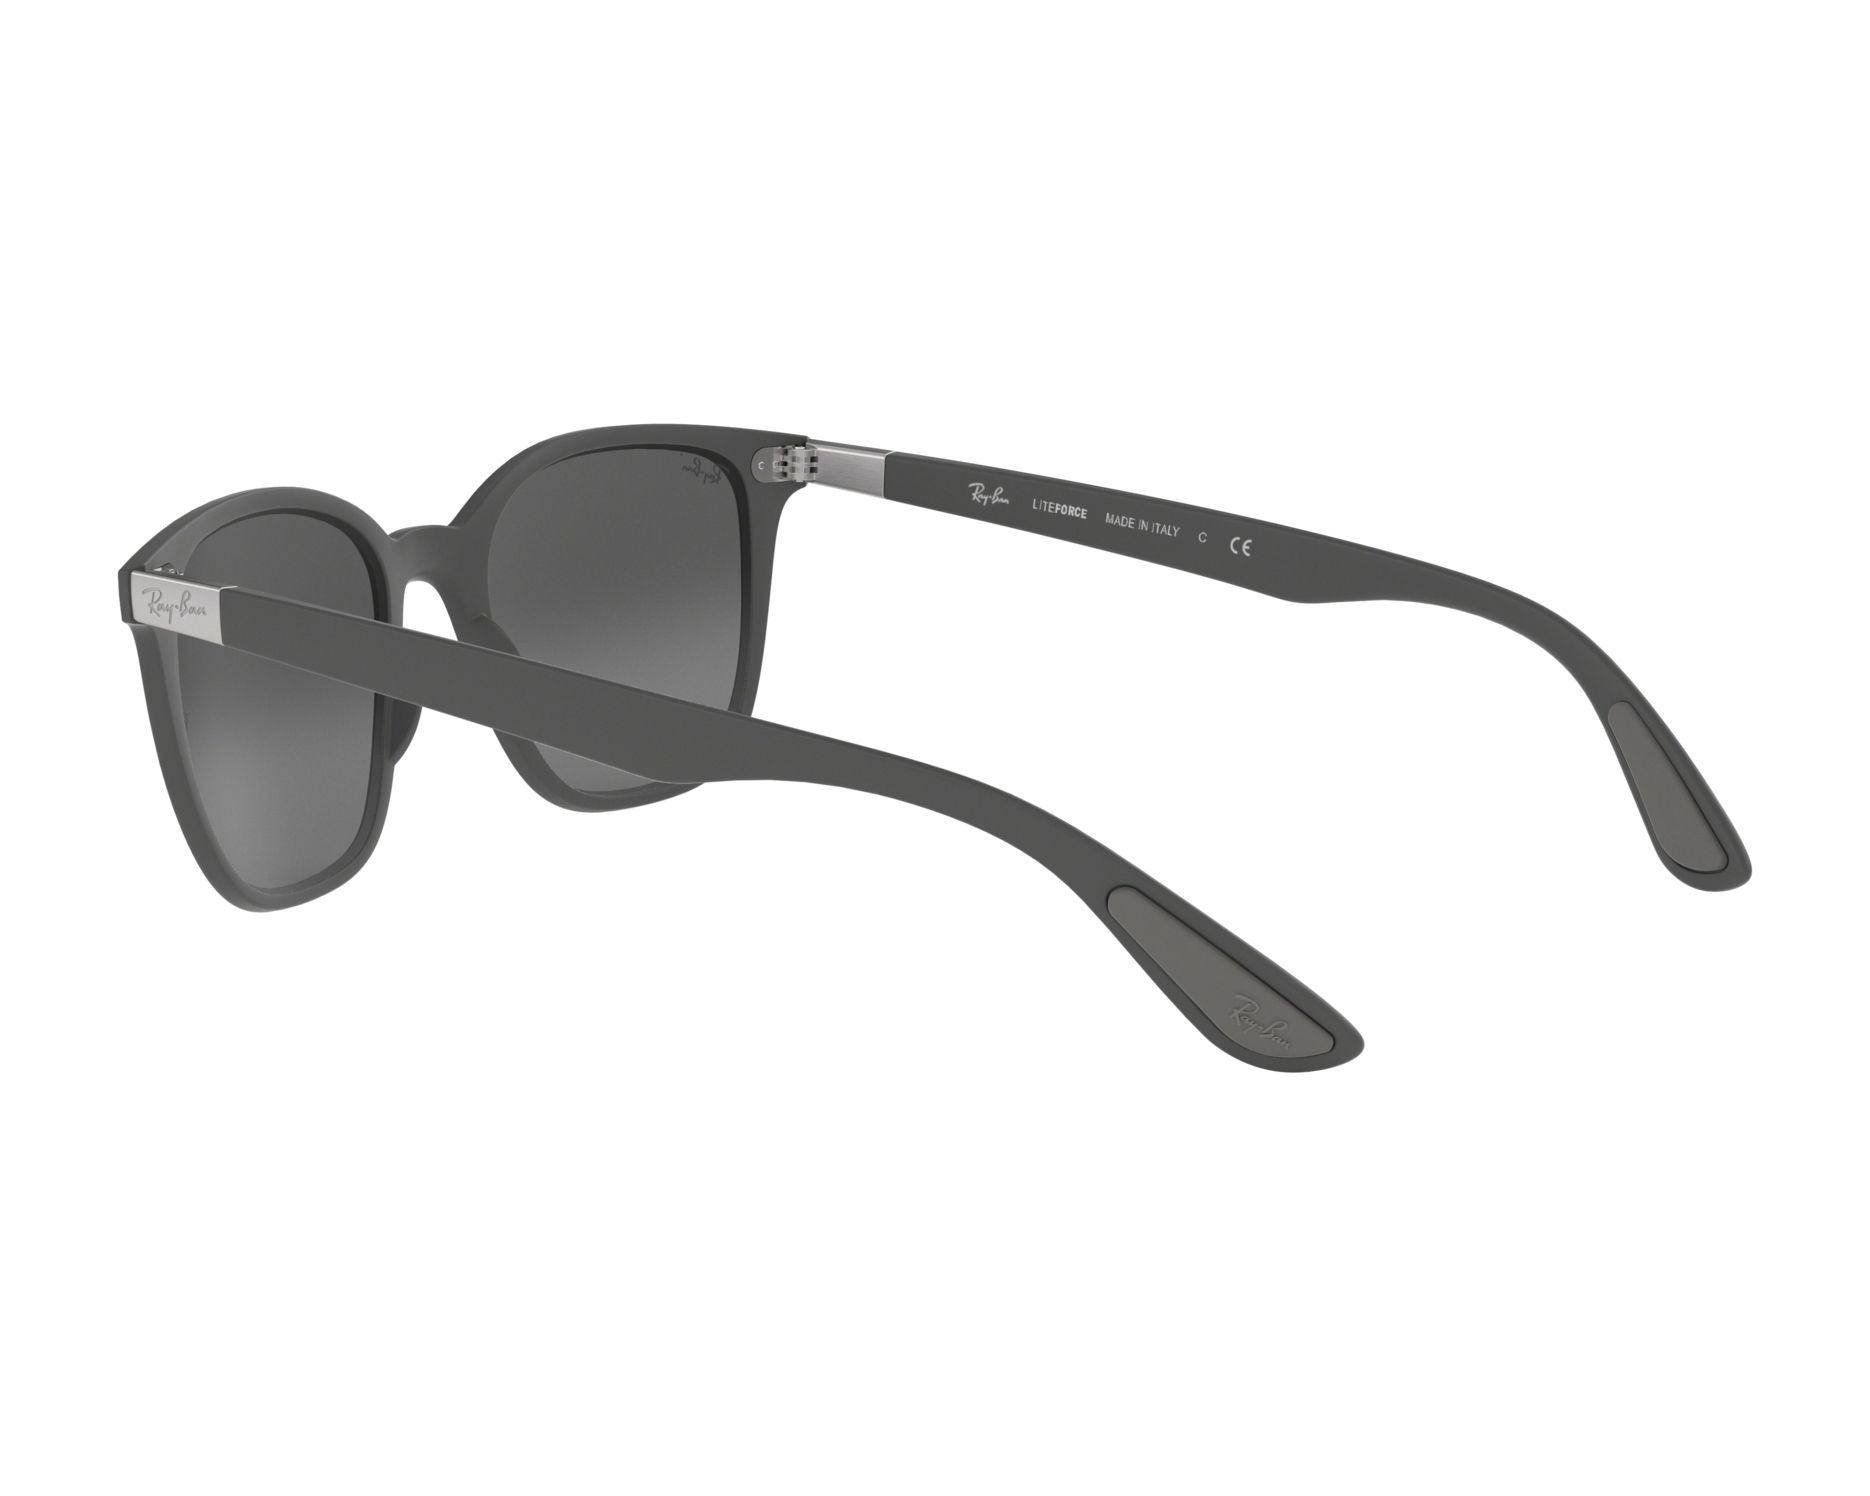 9e19714cf5 Sunglasses Ray-Ban RB-4297 633288 51-19 Grey 360 degree view 5